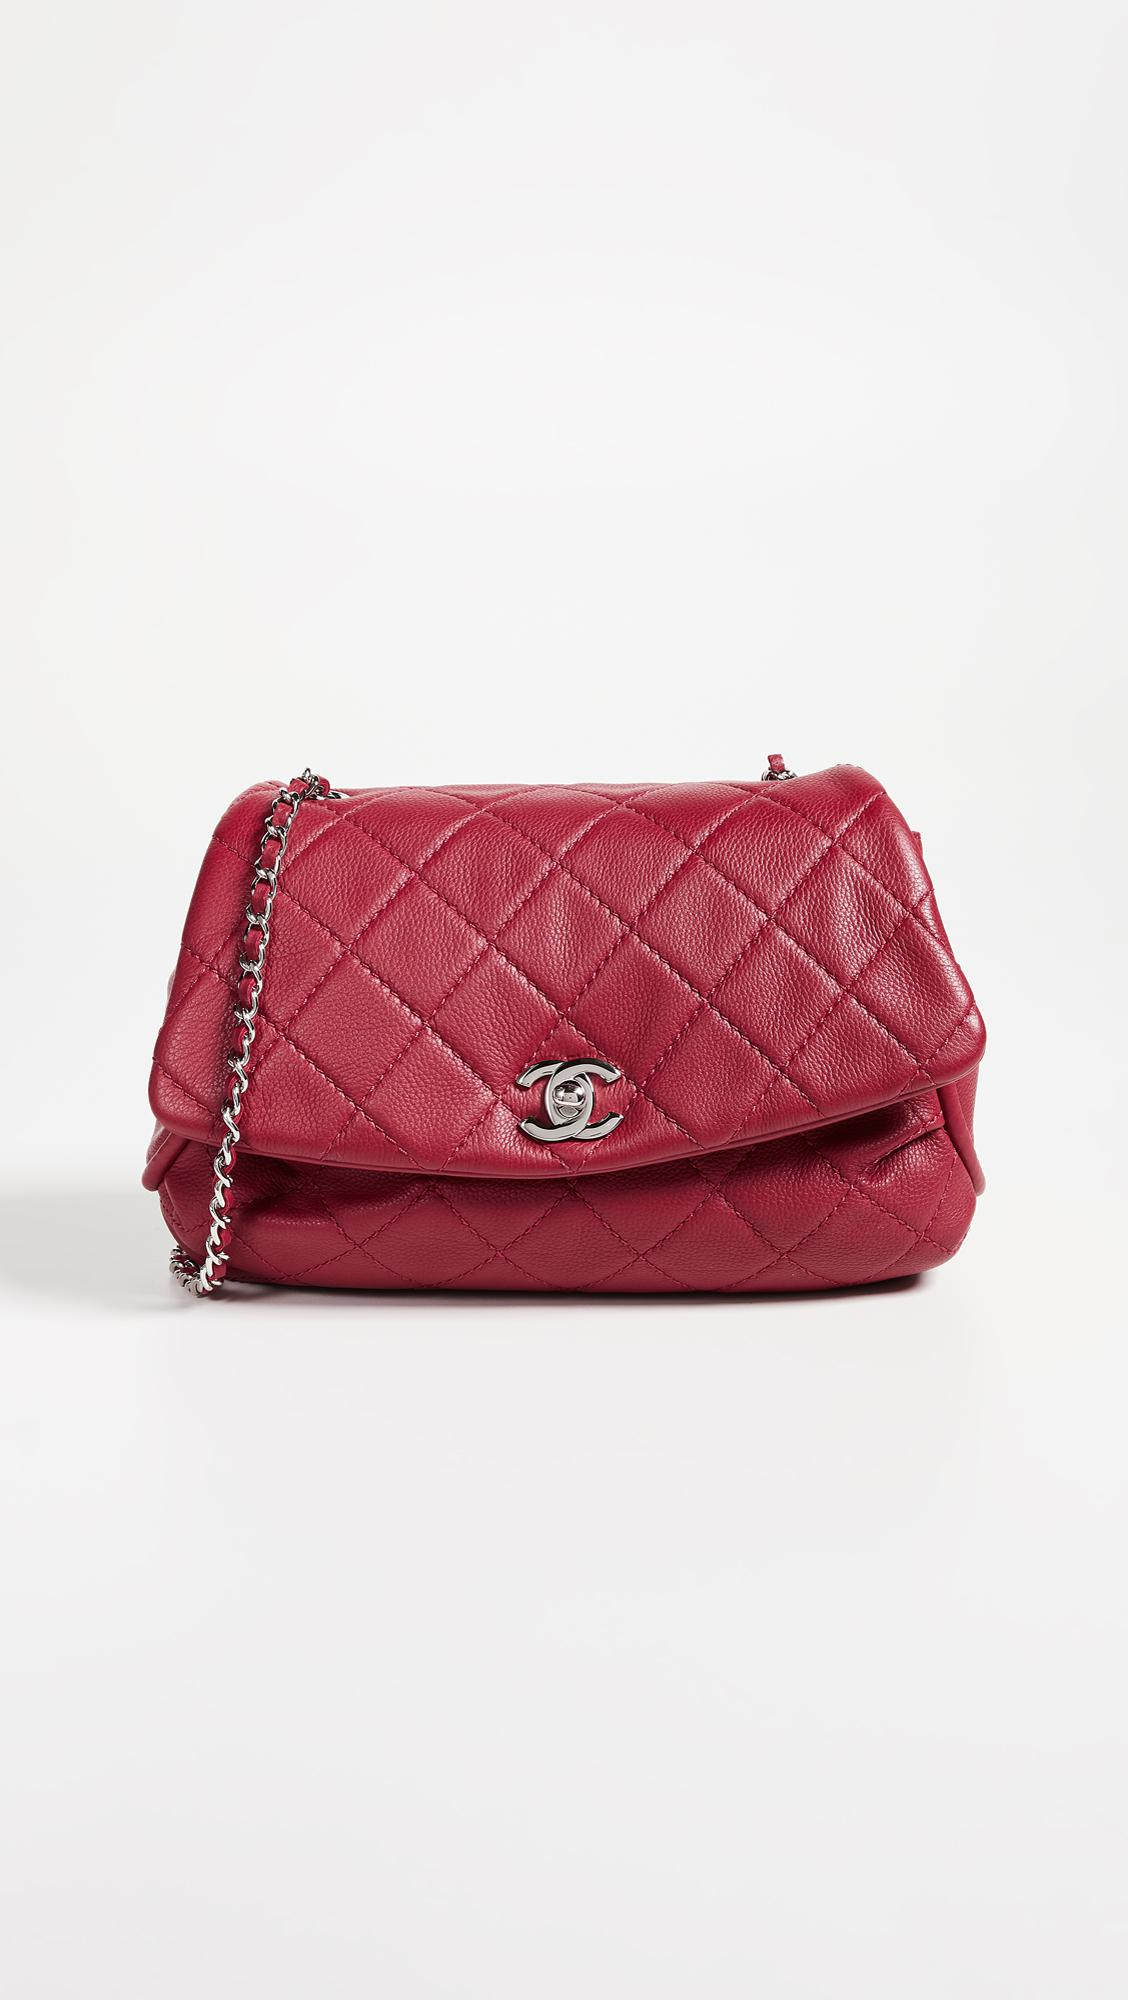 f9d65a6d4249 Lyst - What Goes Around Comes Around Chanel Lambskin Round Flap Bag ...